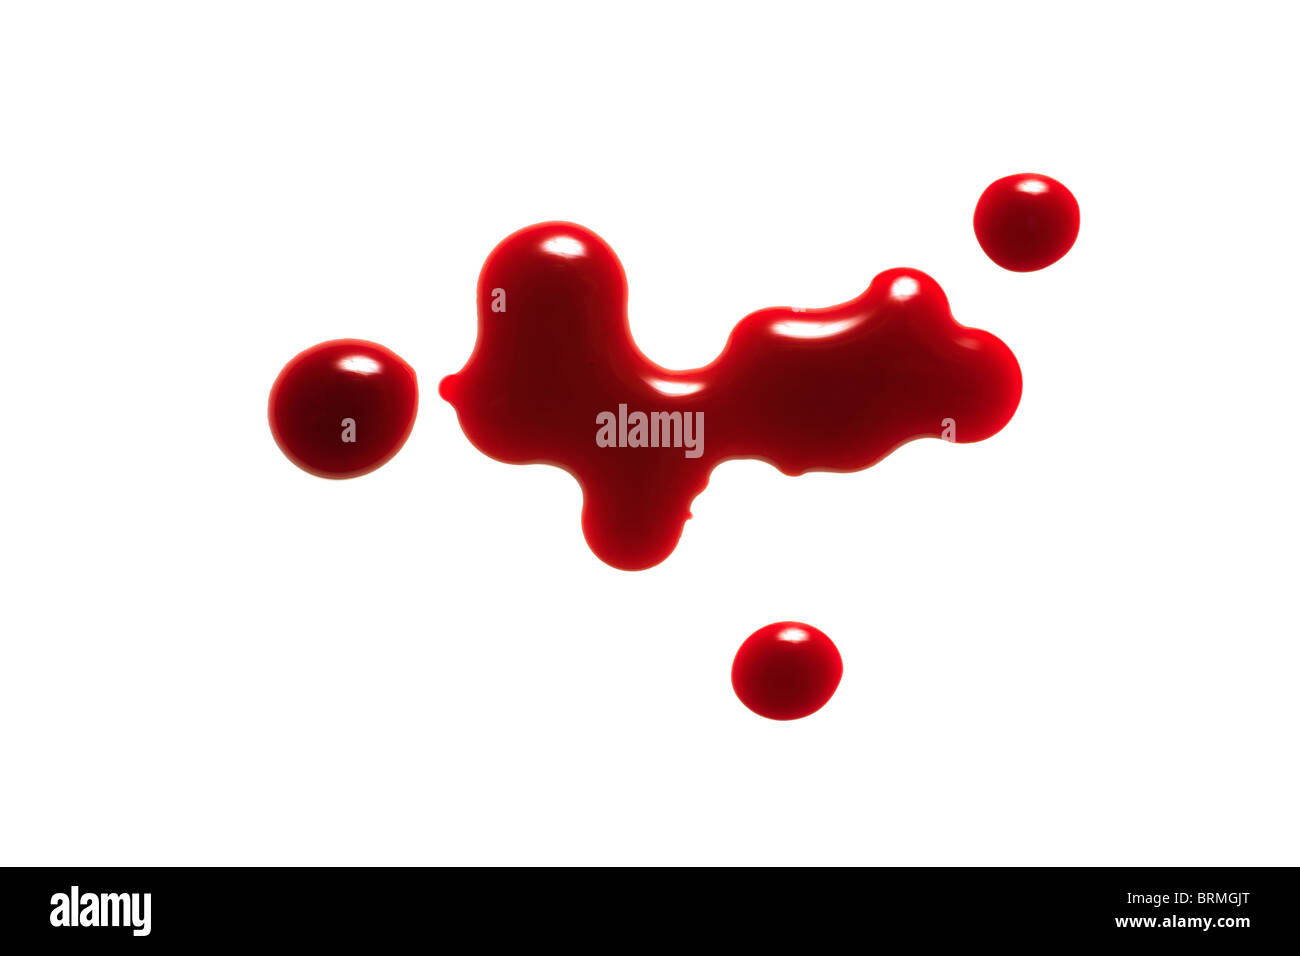 drop of blood isolated on white background close up - Stock Image